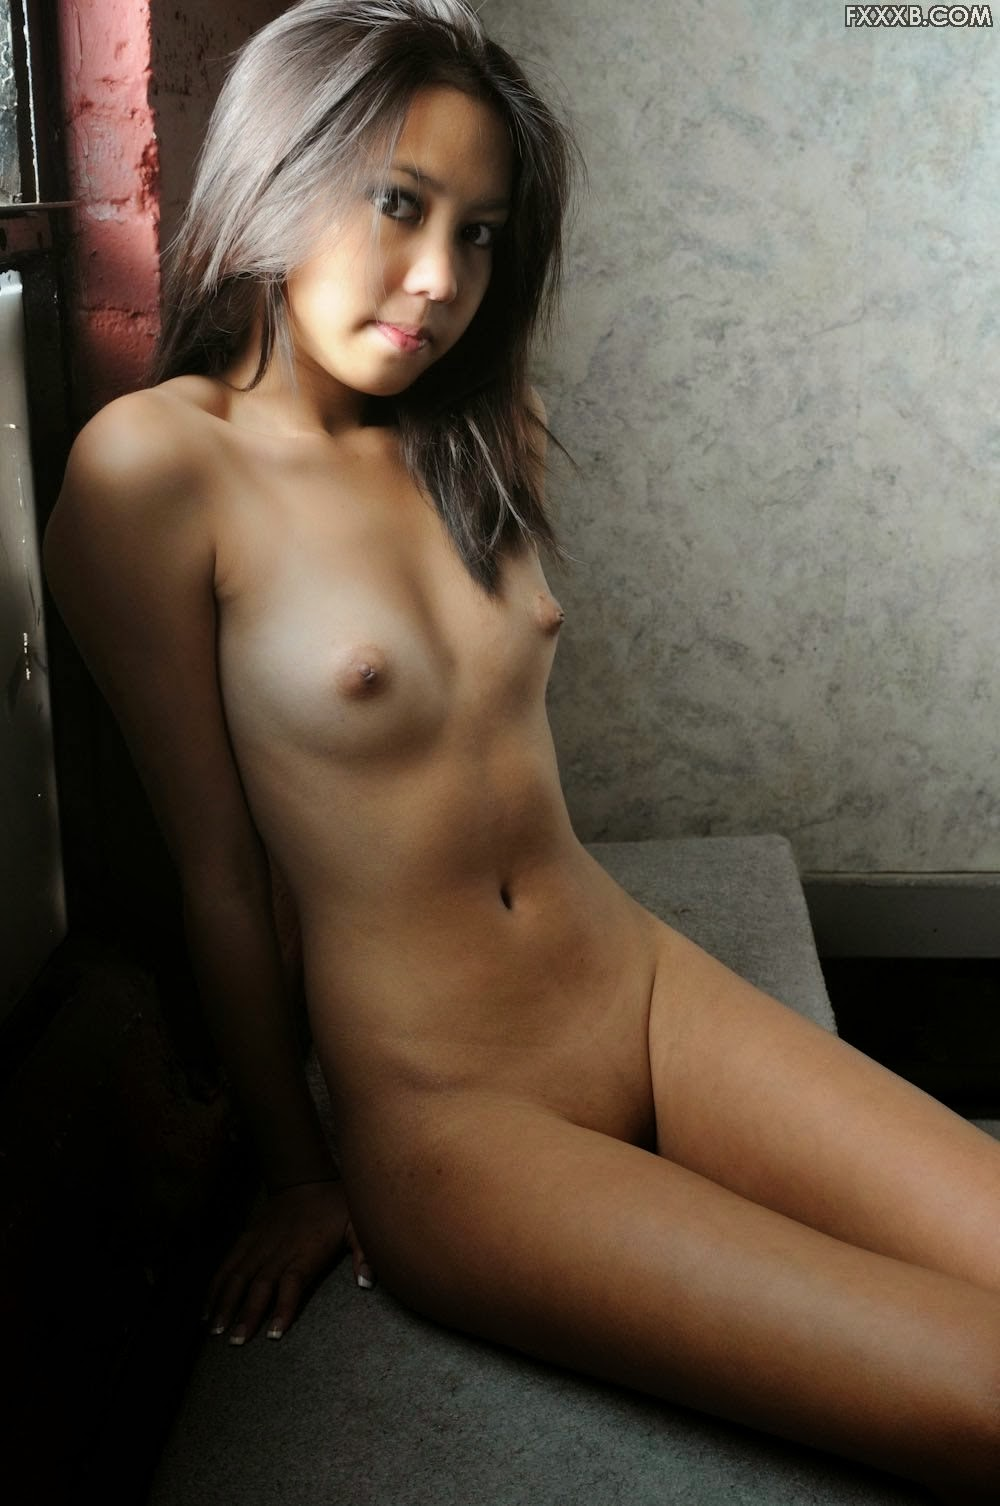 pinay nude photo